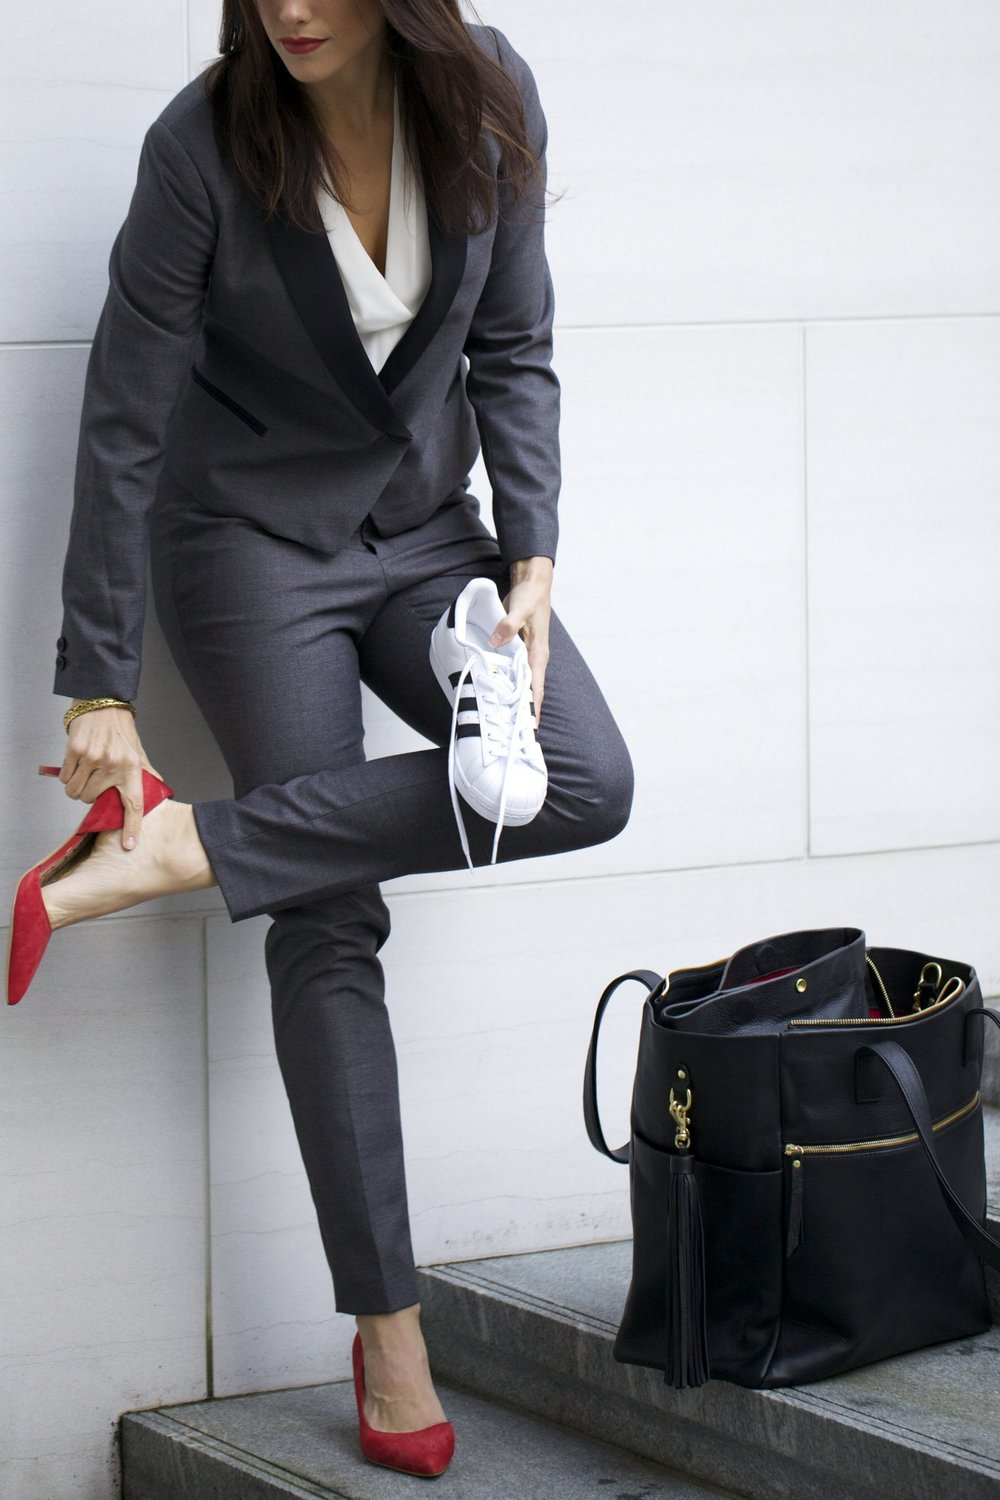 The Daily Commute - From the airport to work, from work to the gym or a last minute lunch date your shoe game is covered.